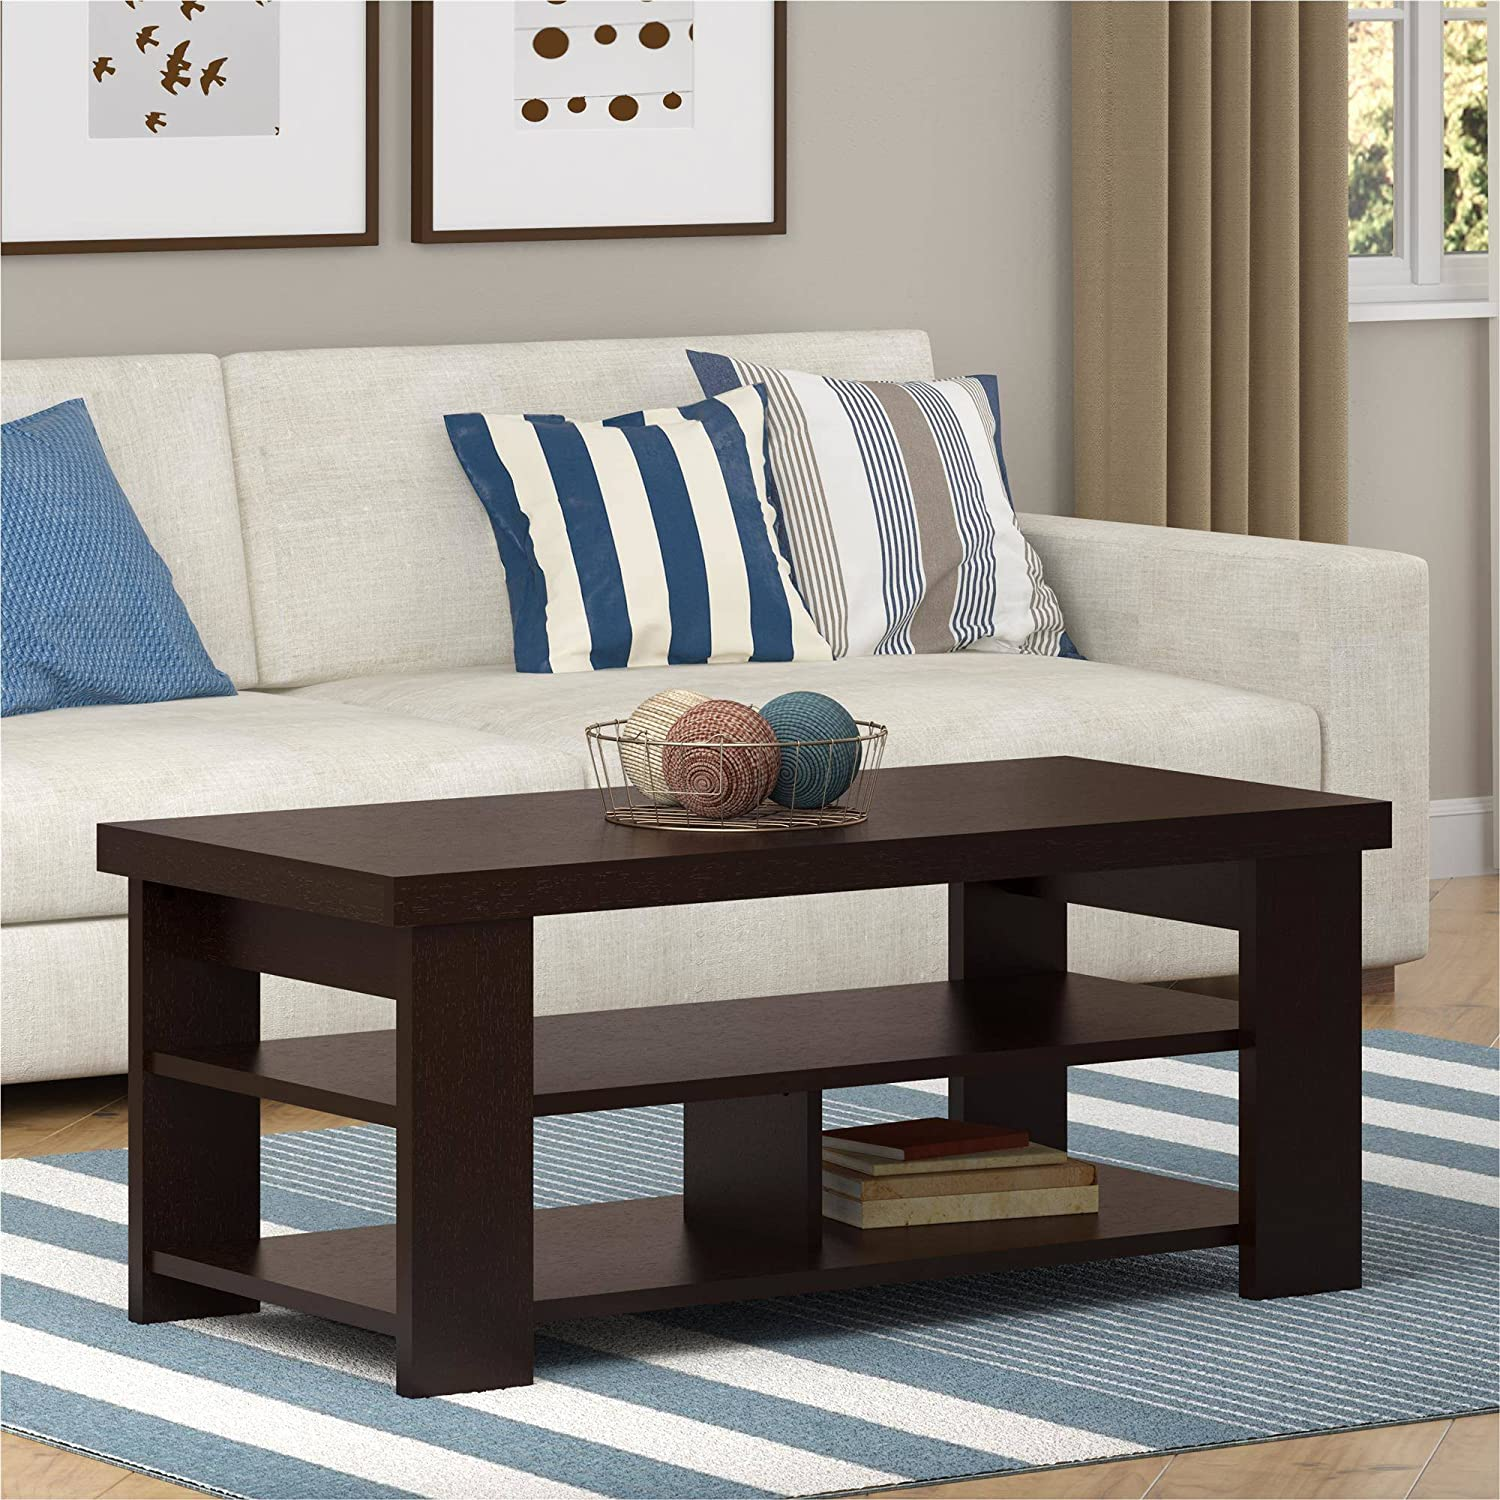 Amazon com ameriwood home jensen coffee table multiple colors coffee table espresso kitchen dining